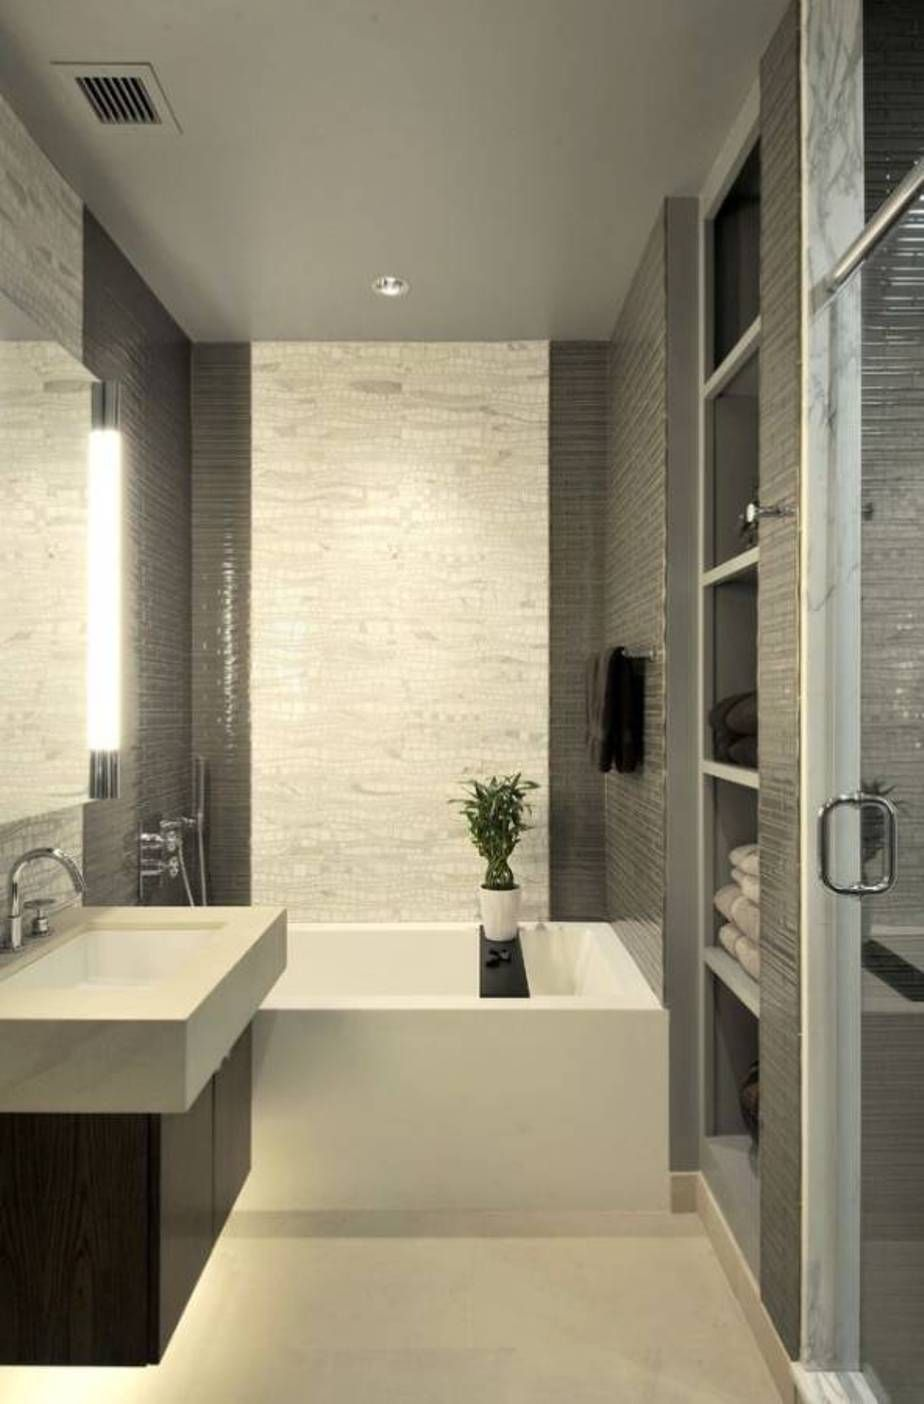 Bathroom modern small bathroom design ideas modern for Small bathroom ideas with tub